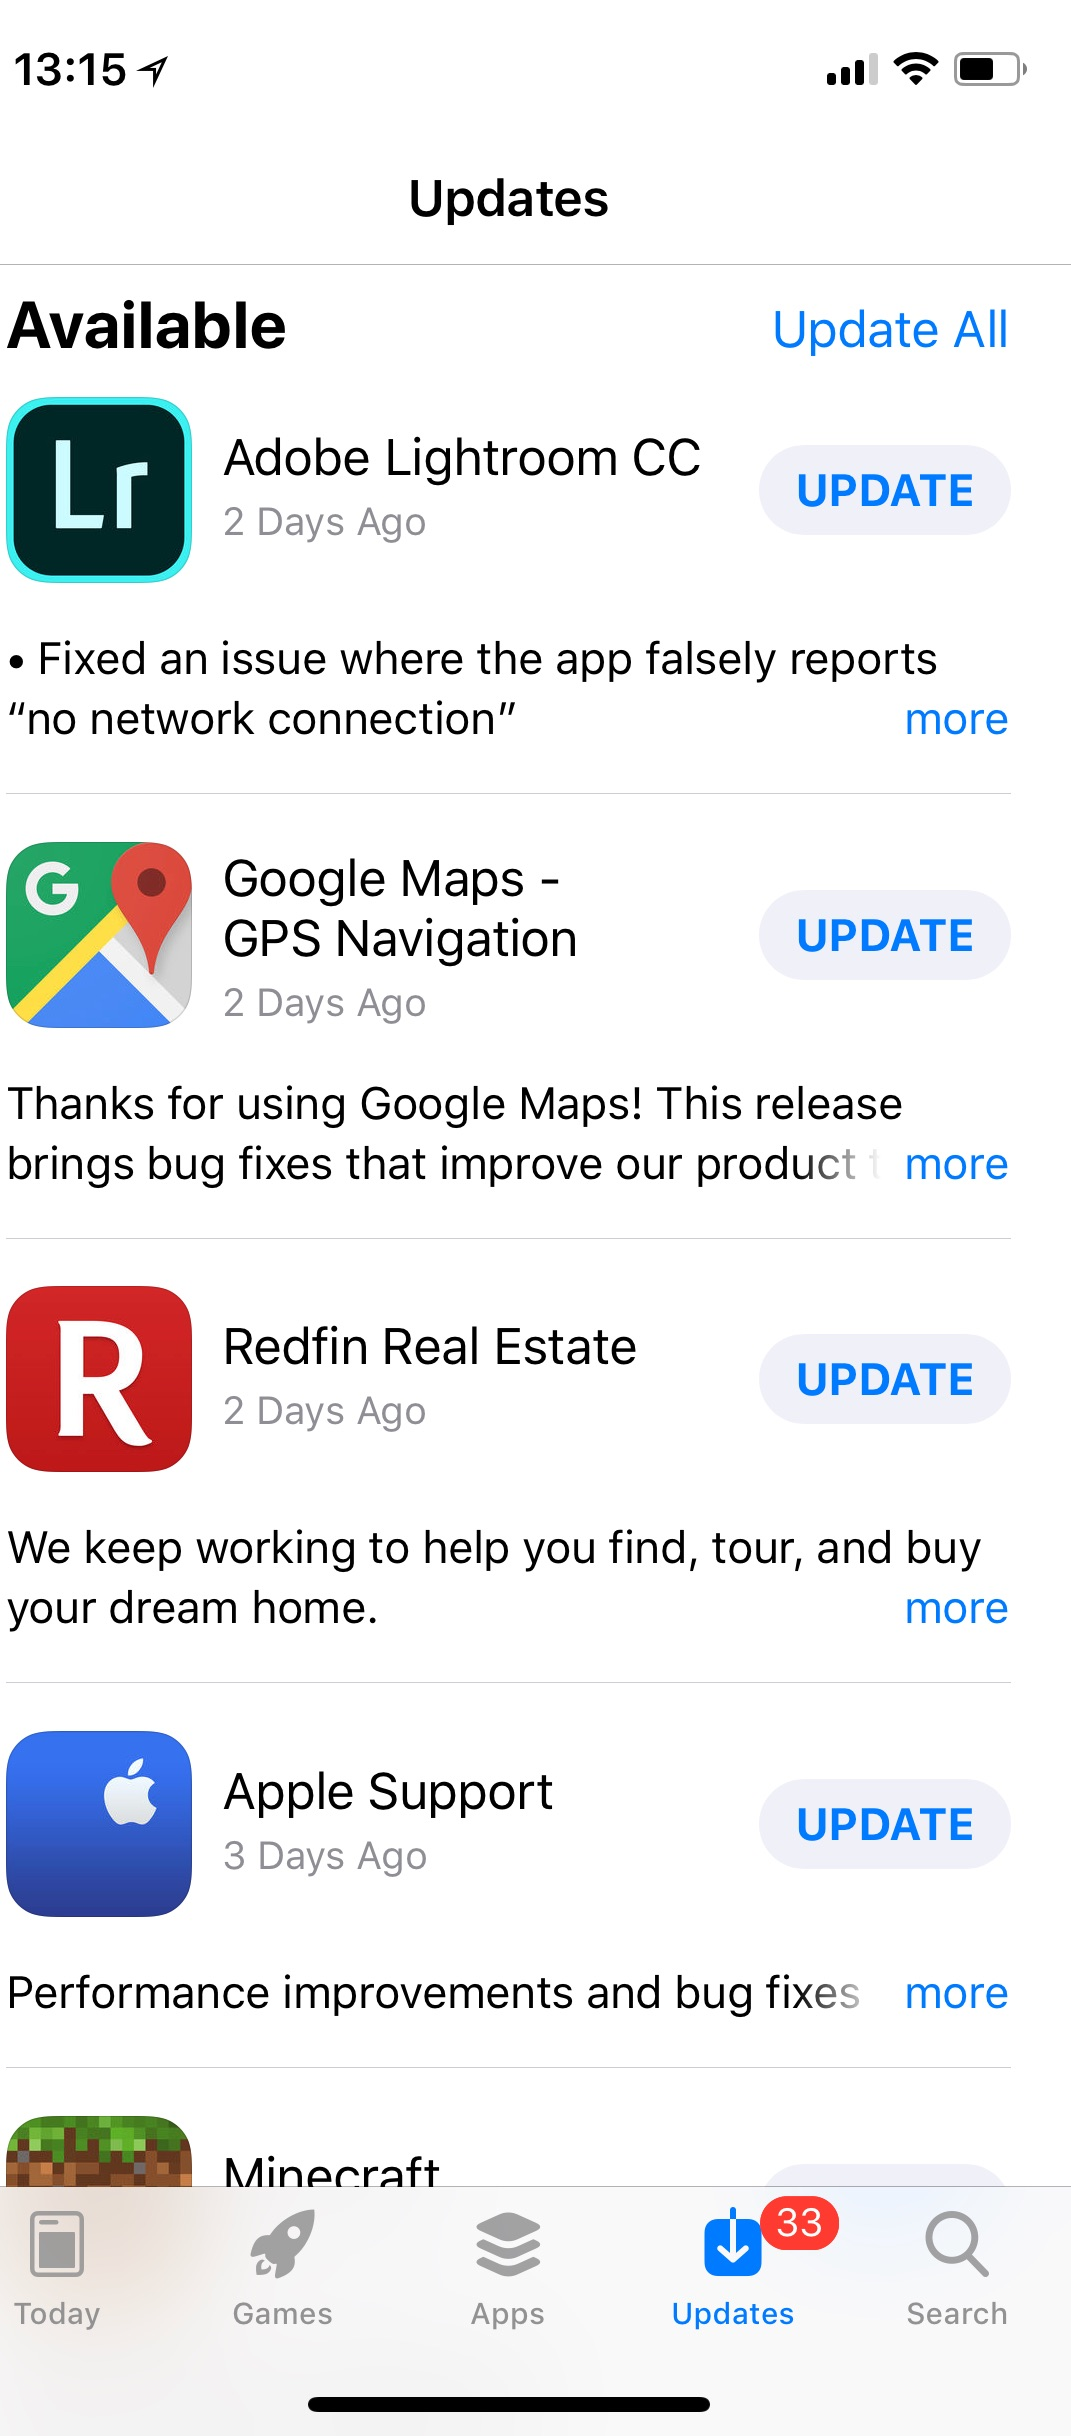 Google Maps Not Working? Fix - macReports